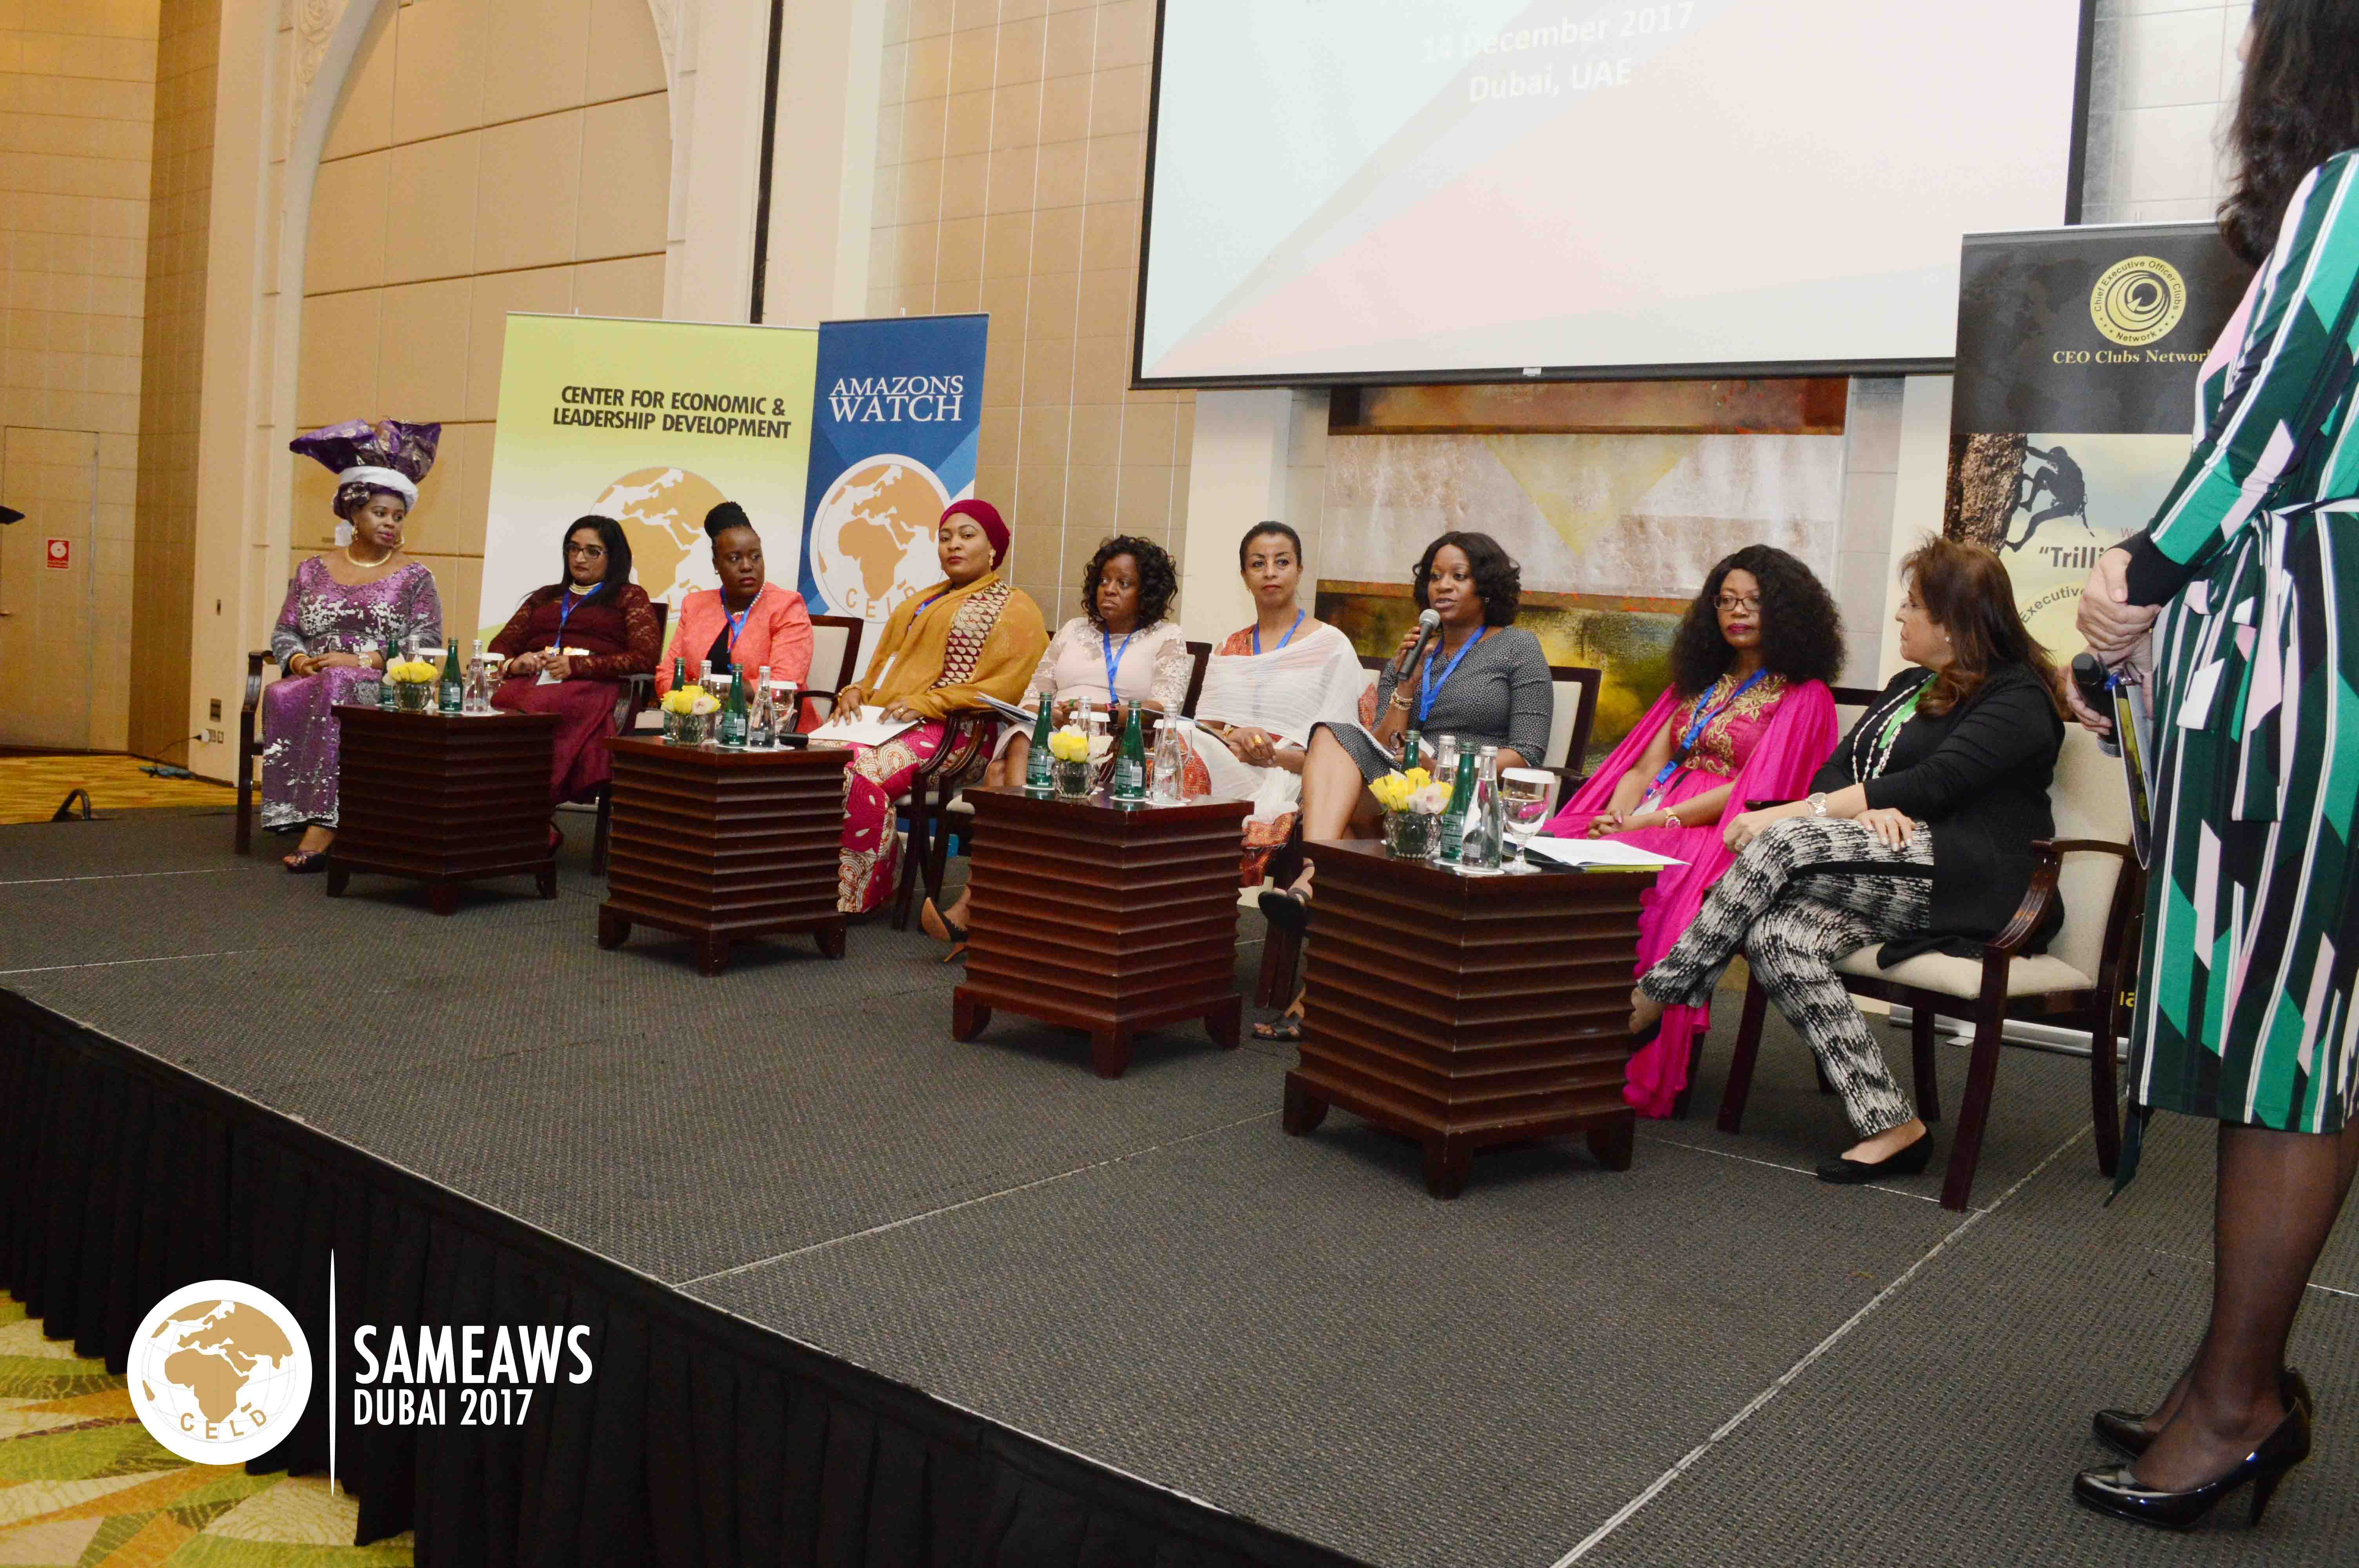 Panelists at the session on The Transformational CEOs